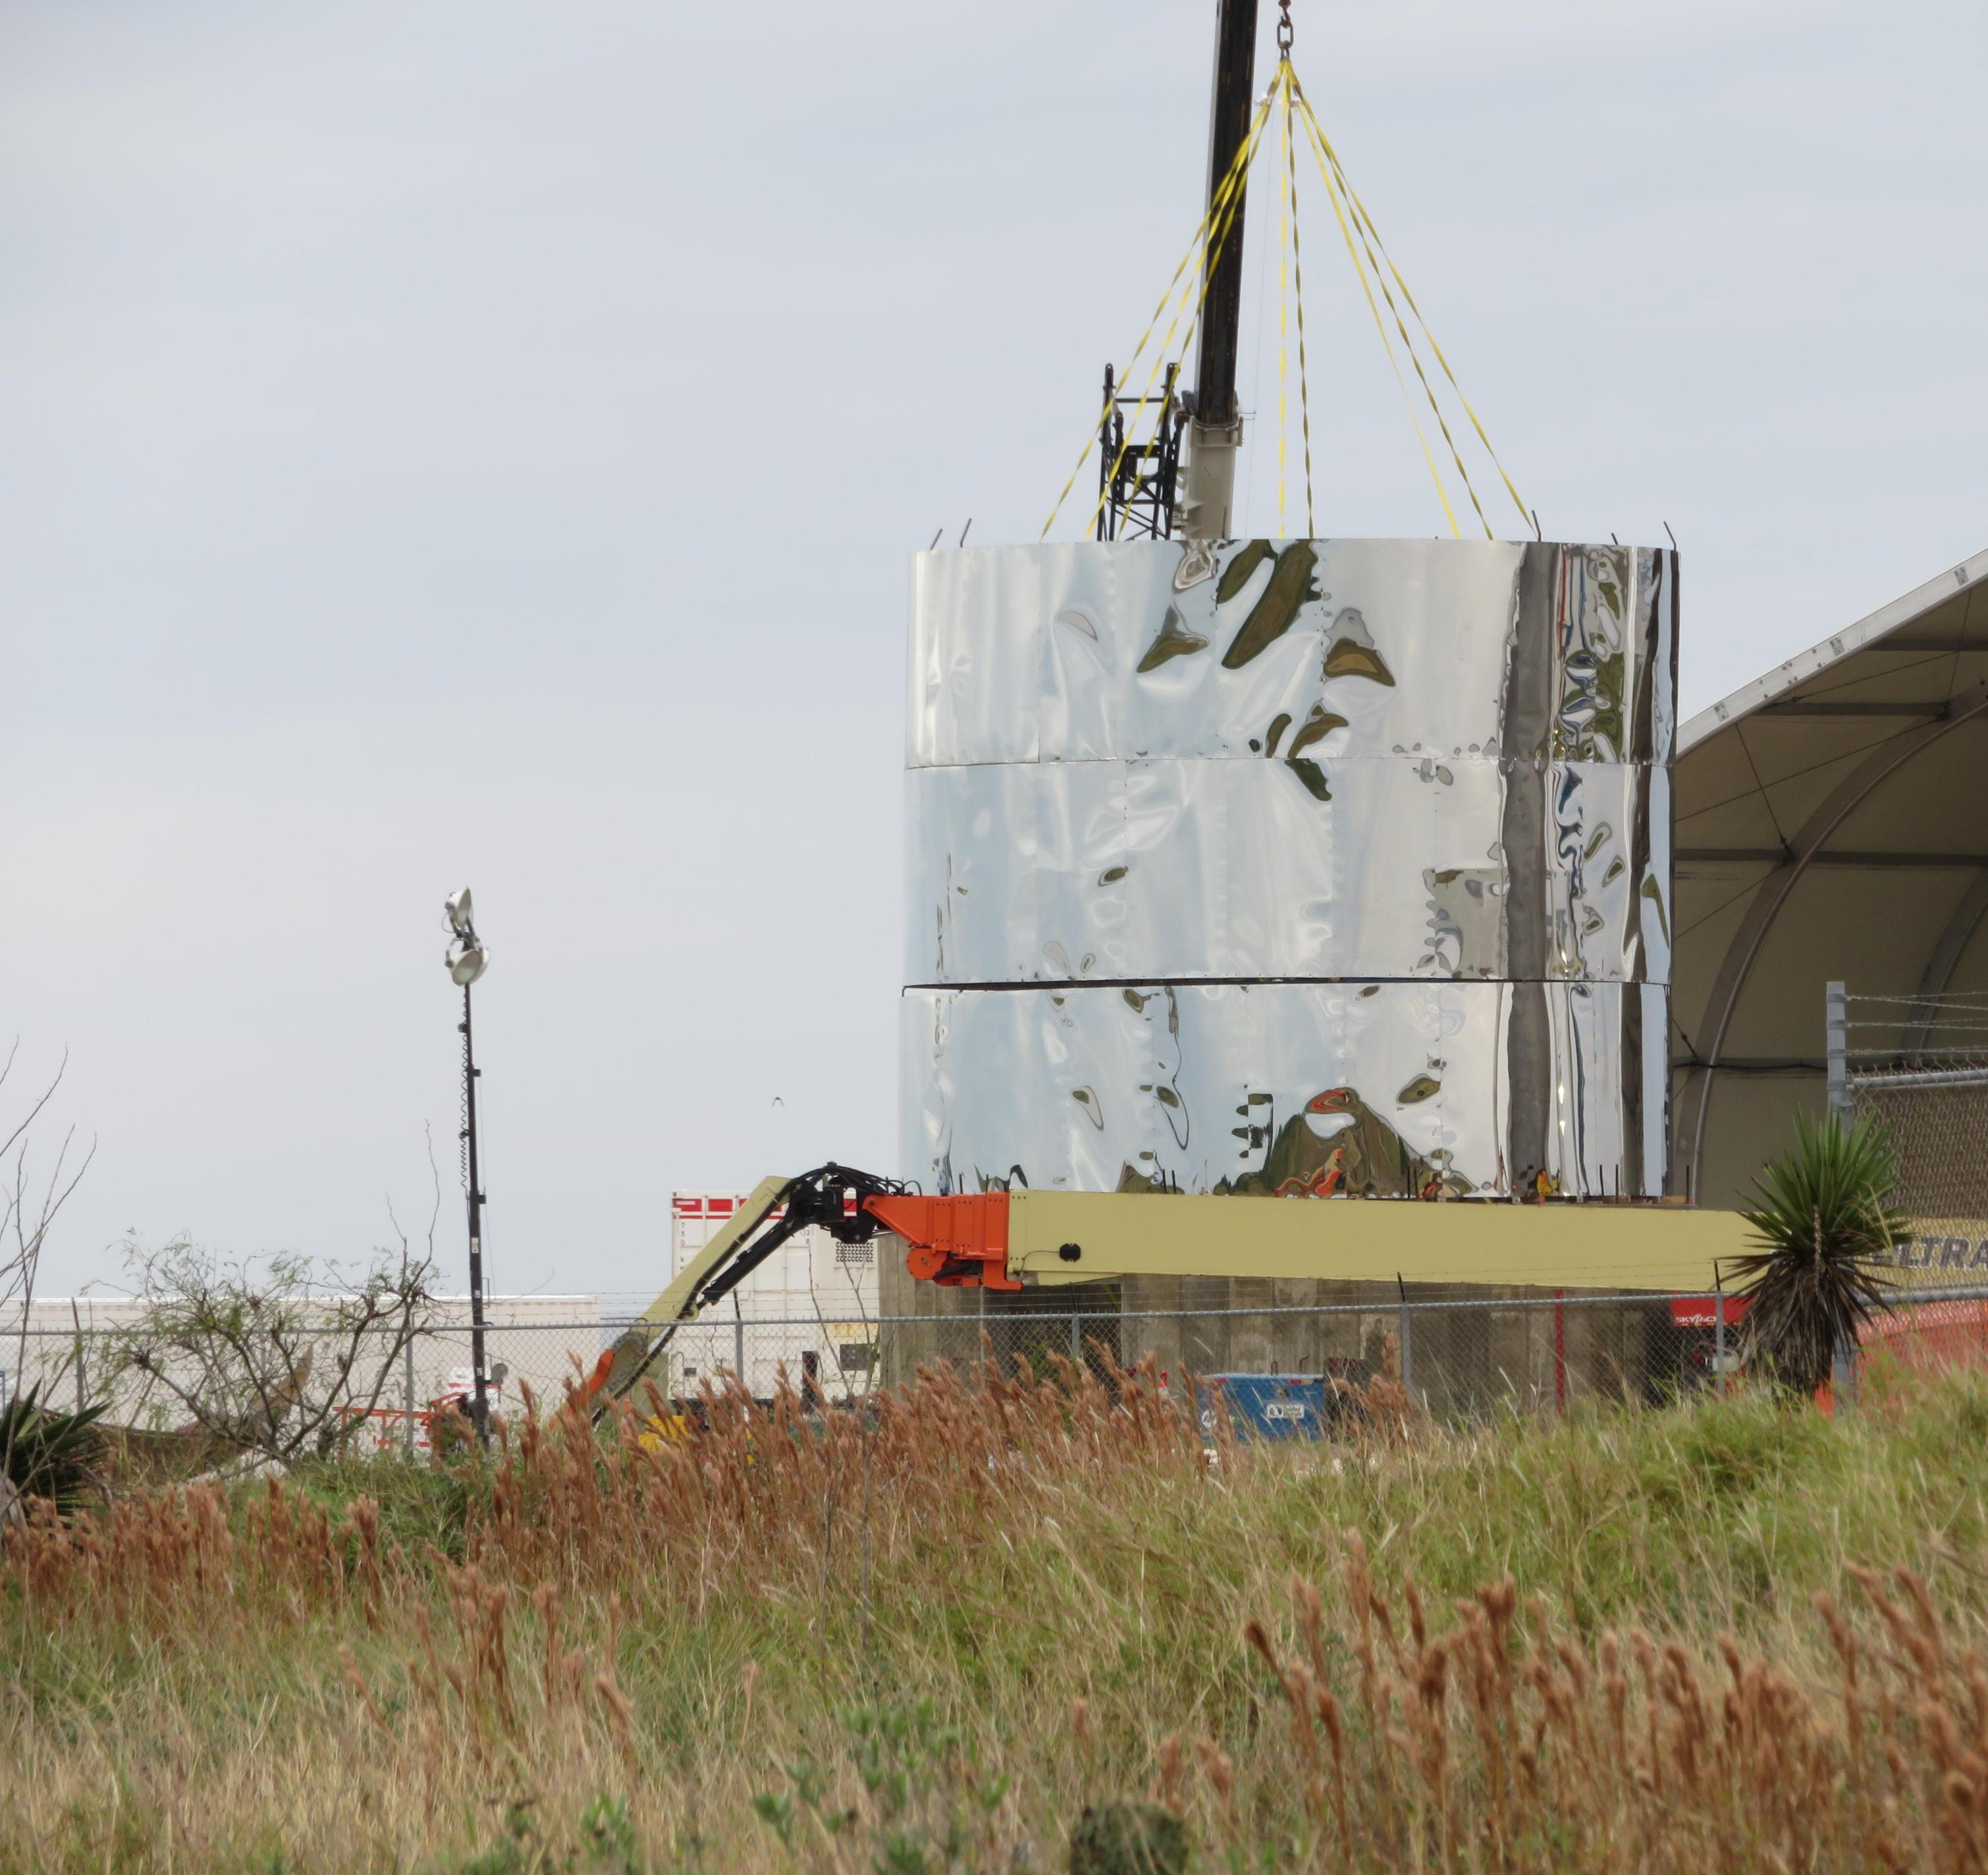 Boca Chica Starship progress 123118 (NSF – bocachicagal) 1(c)